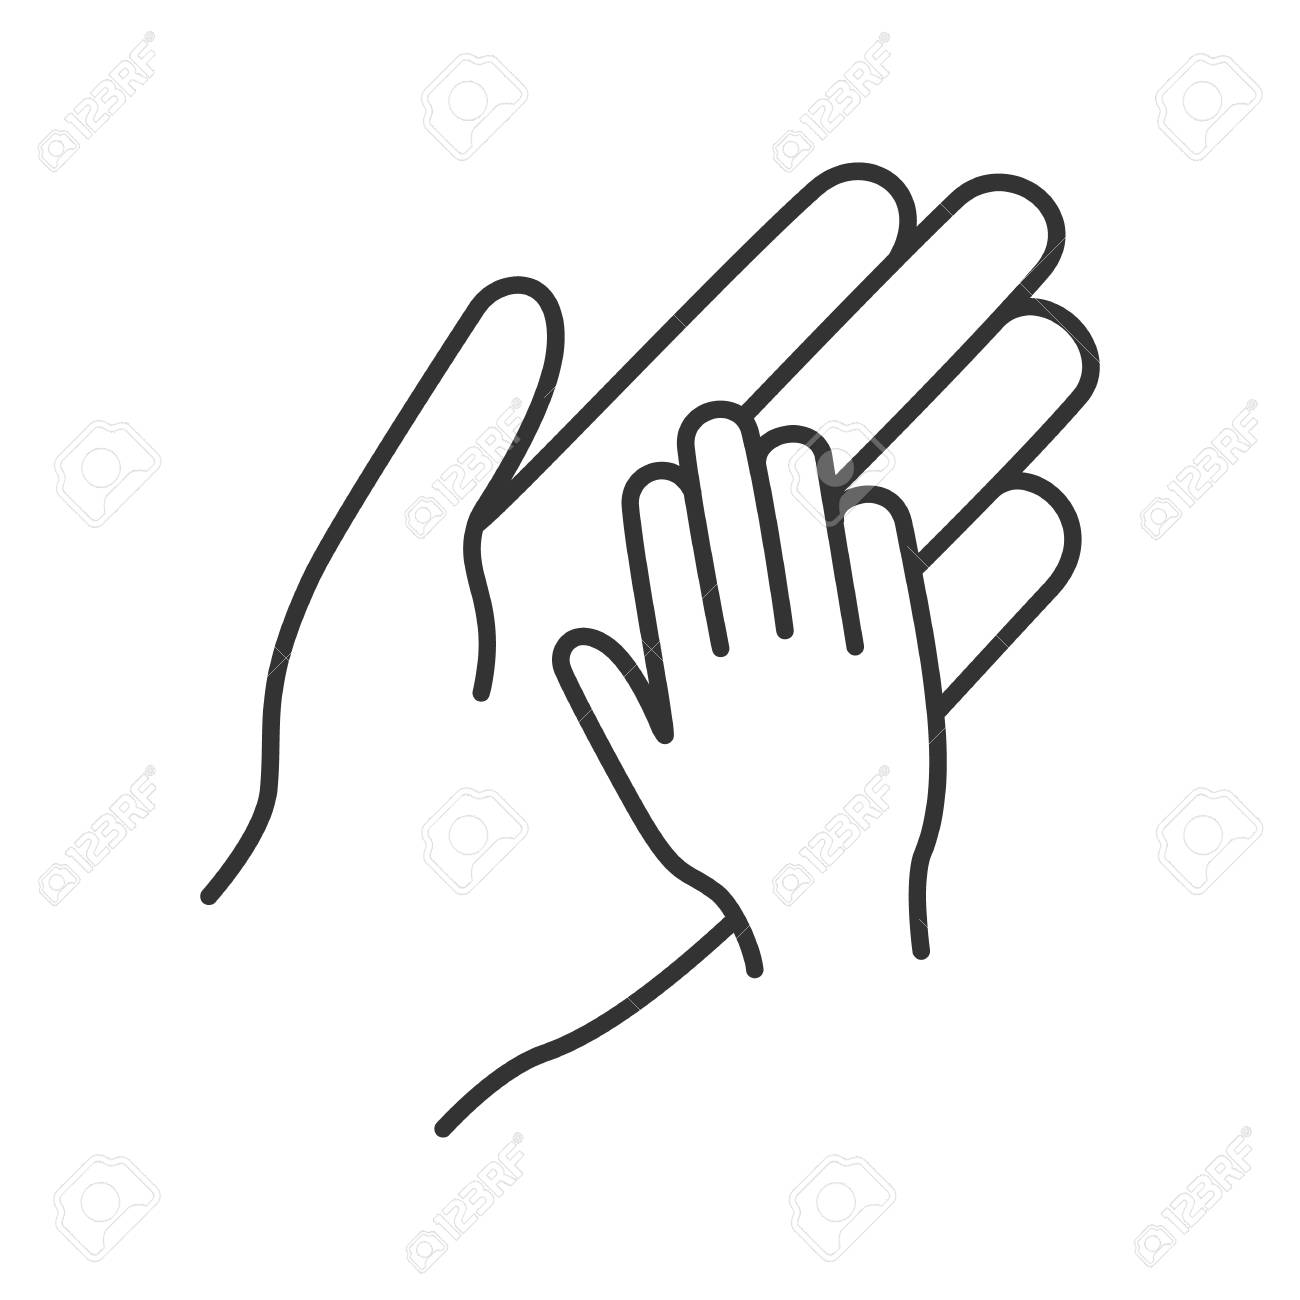 Charity For Children Linear Icon Parent And Child Hands Together